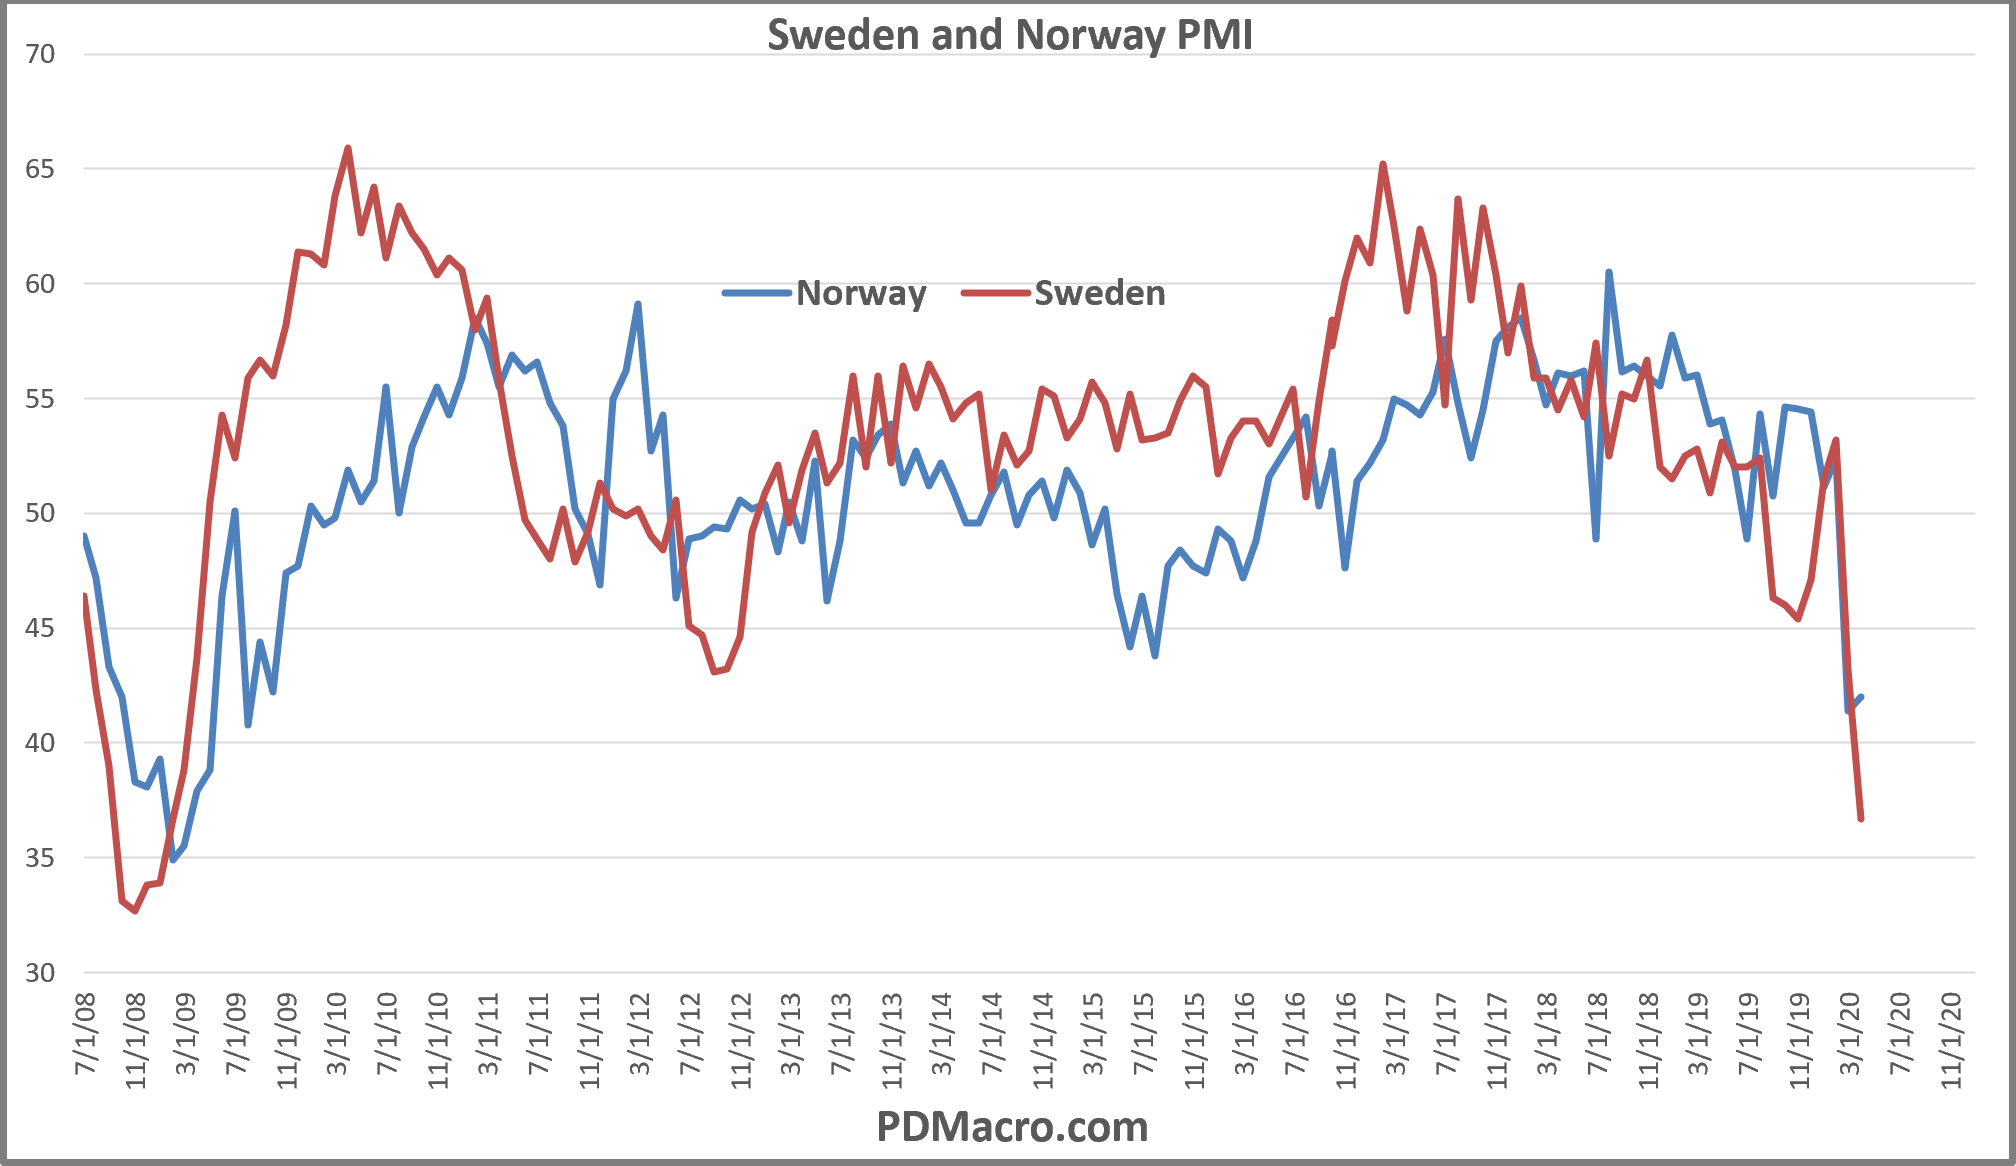 Sweden and Norway PMI Markit